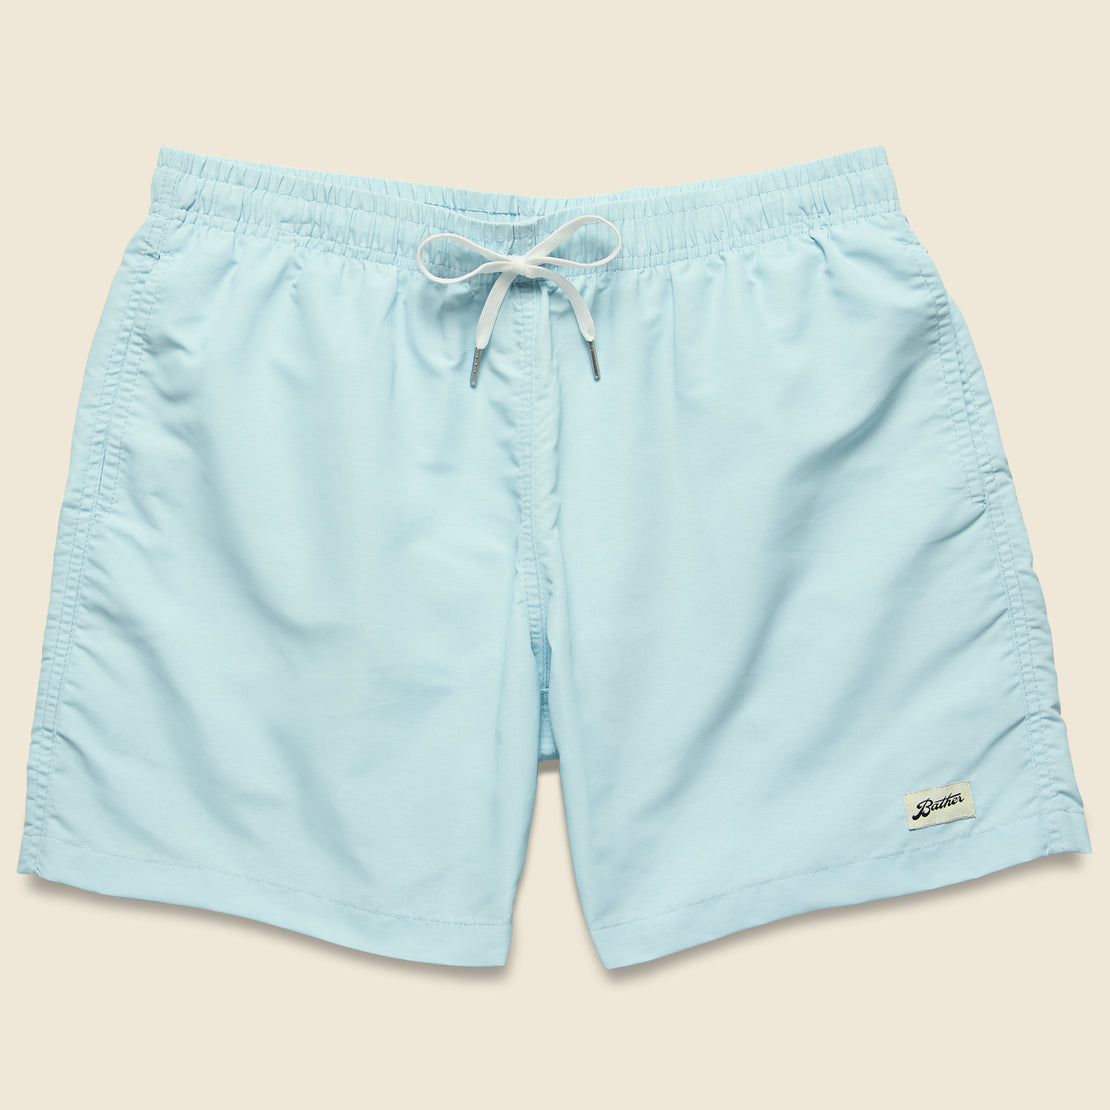 Bather Solid Swim Trunk - Baby Blue